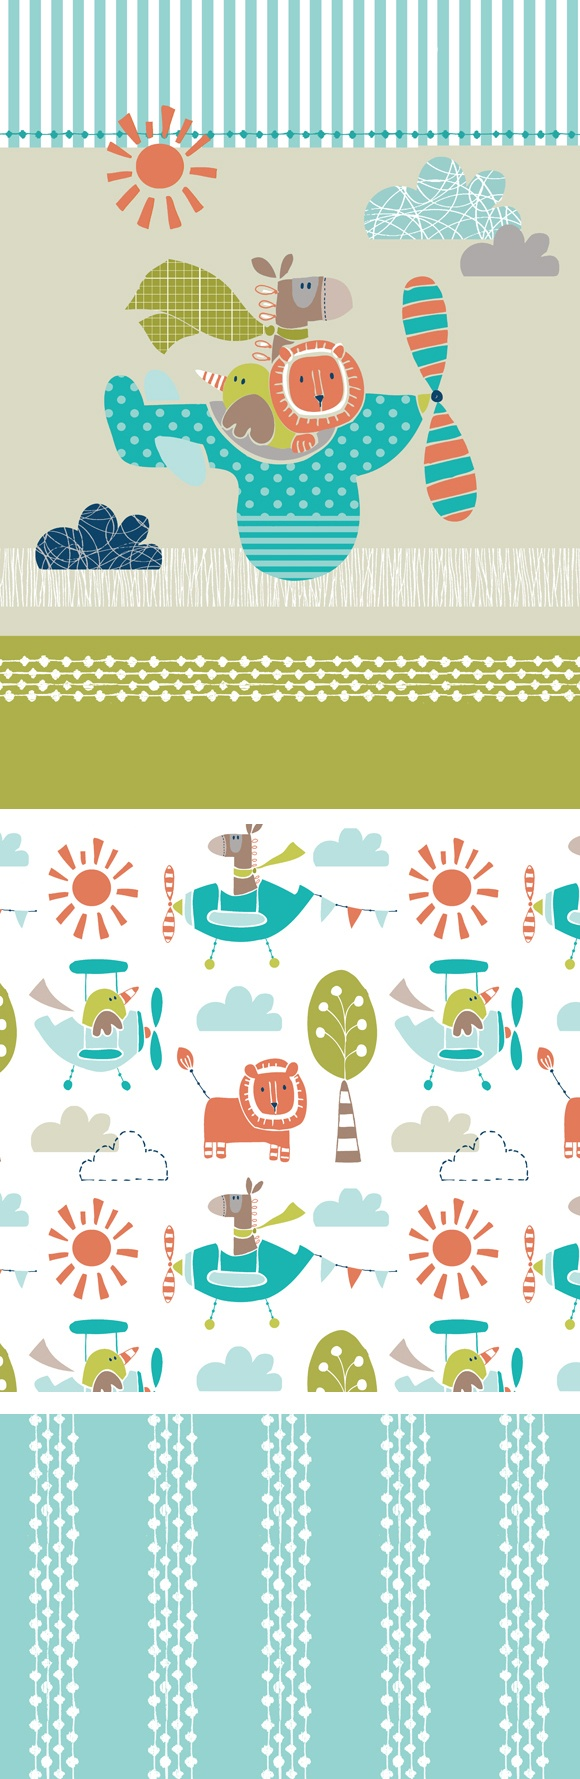 wendy kendall designs – freelance surface pattern designer » up and away